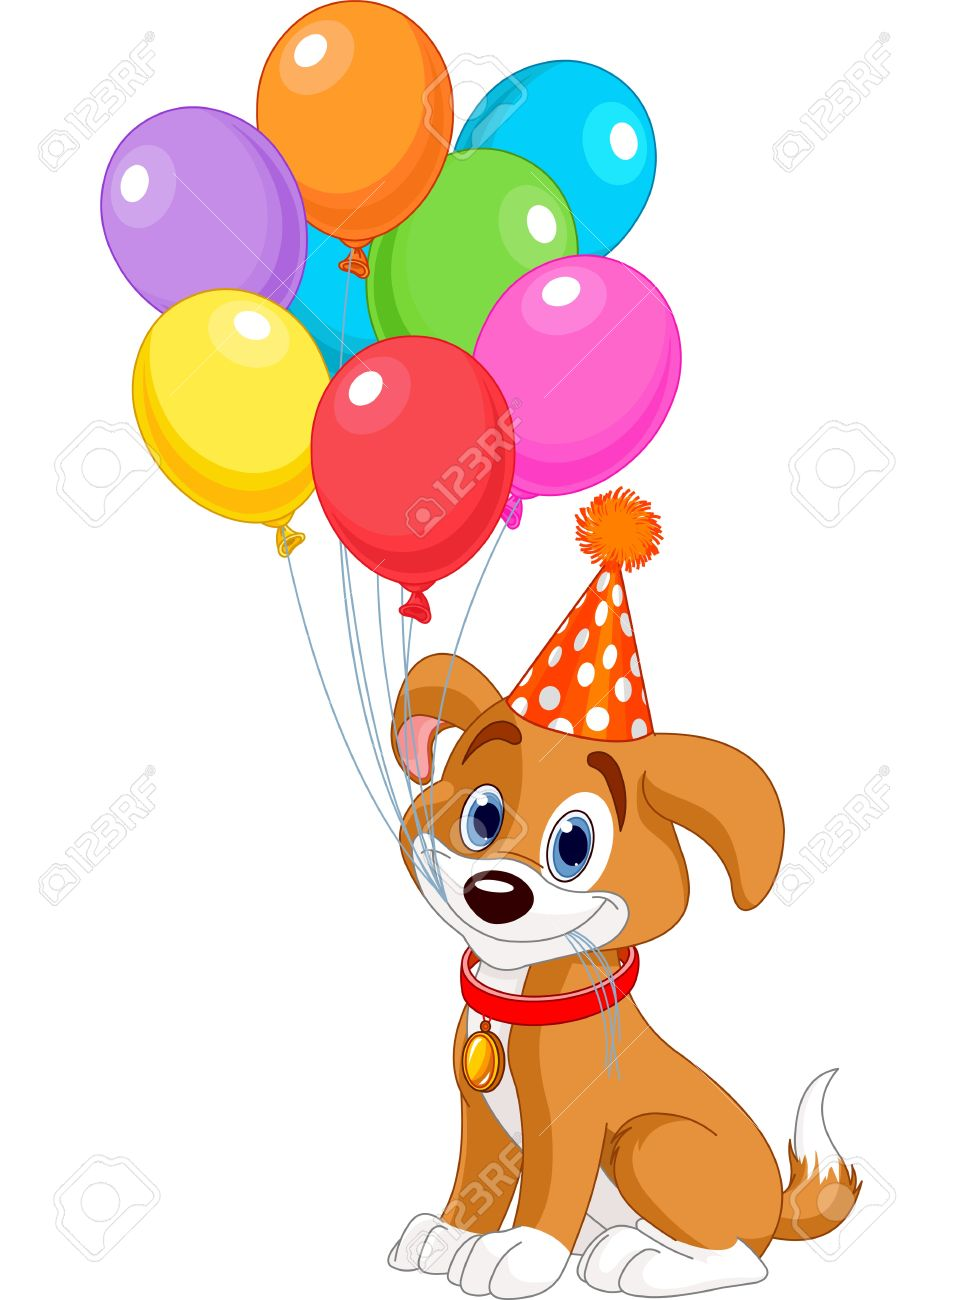 birthday puppy clipart ; 20343210-cute-puppy-with-birthday-balloons-and-party-hat